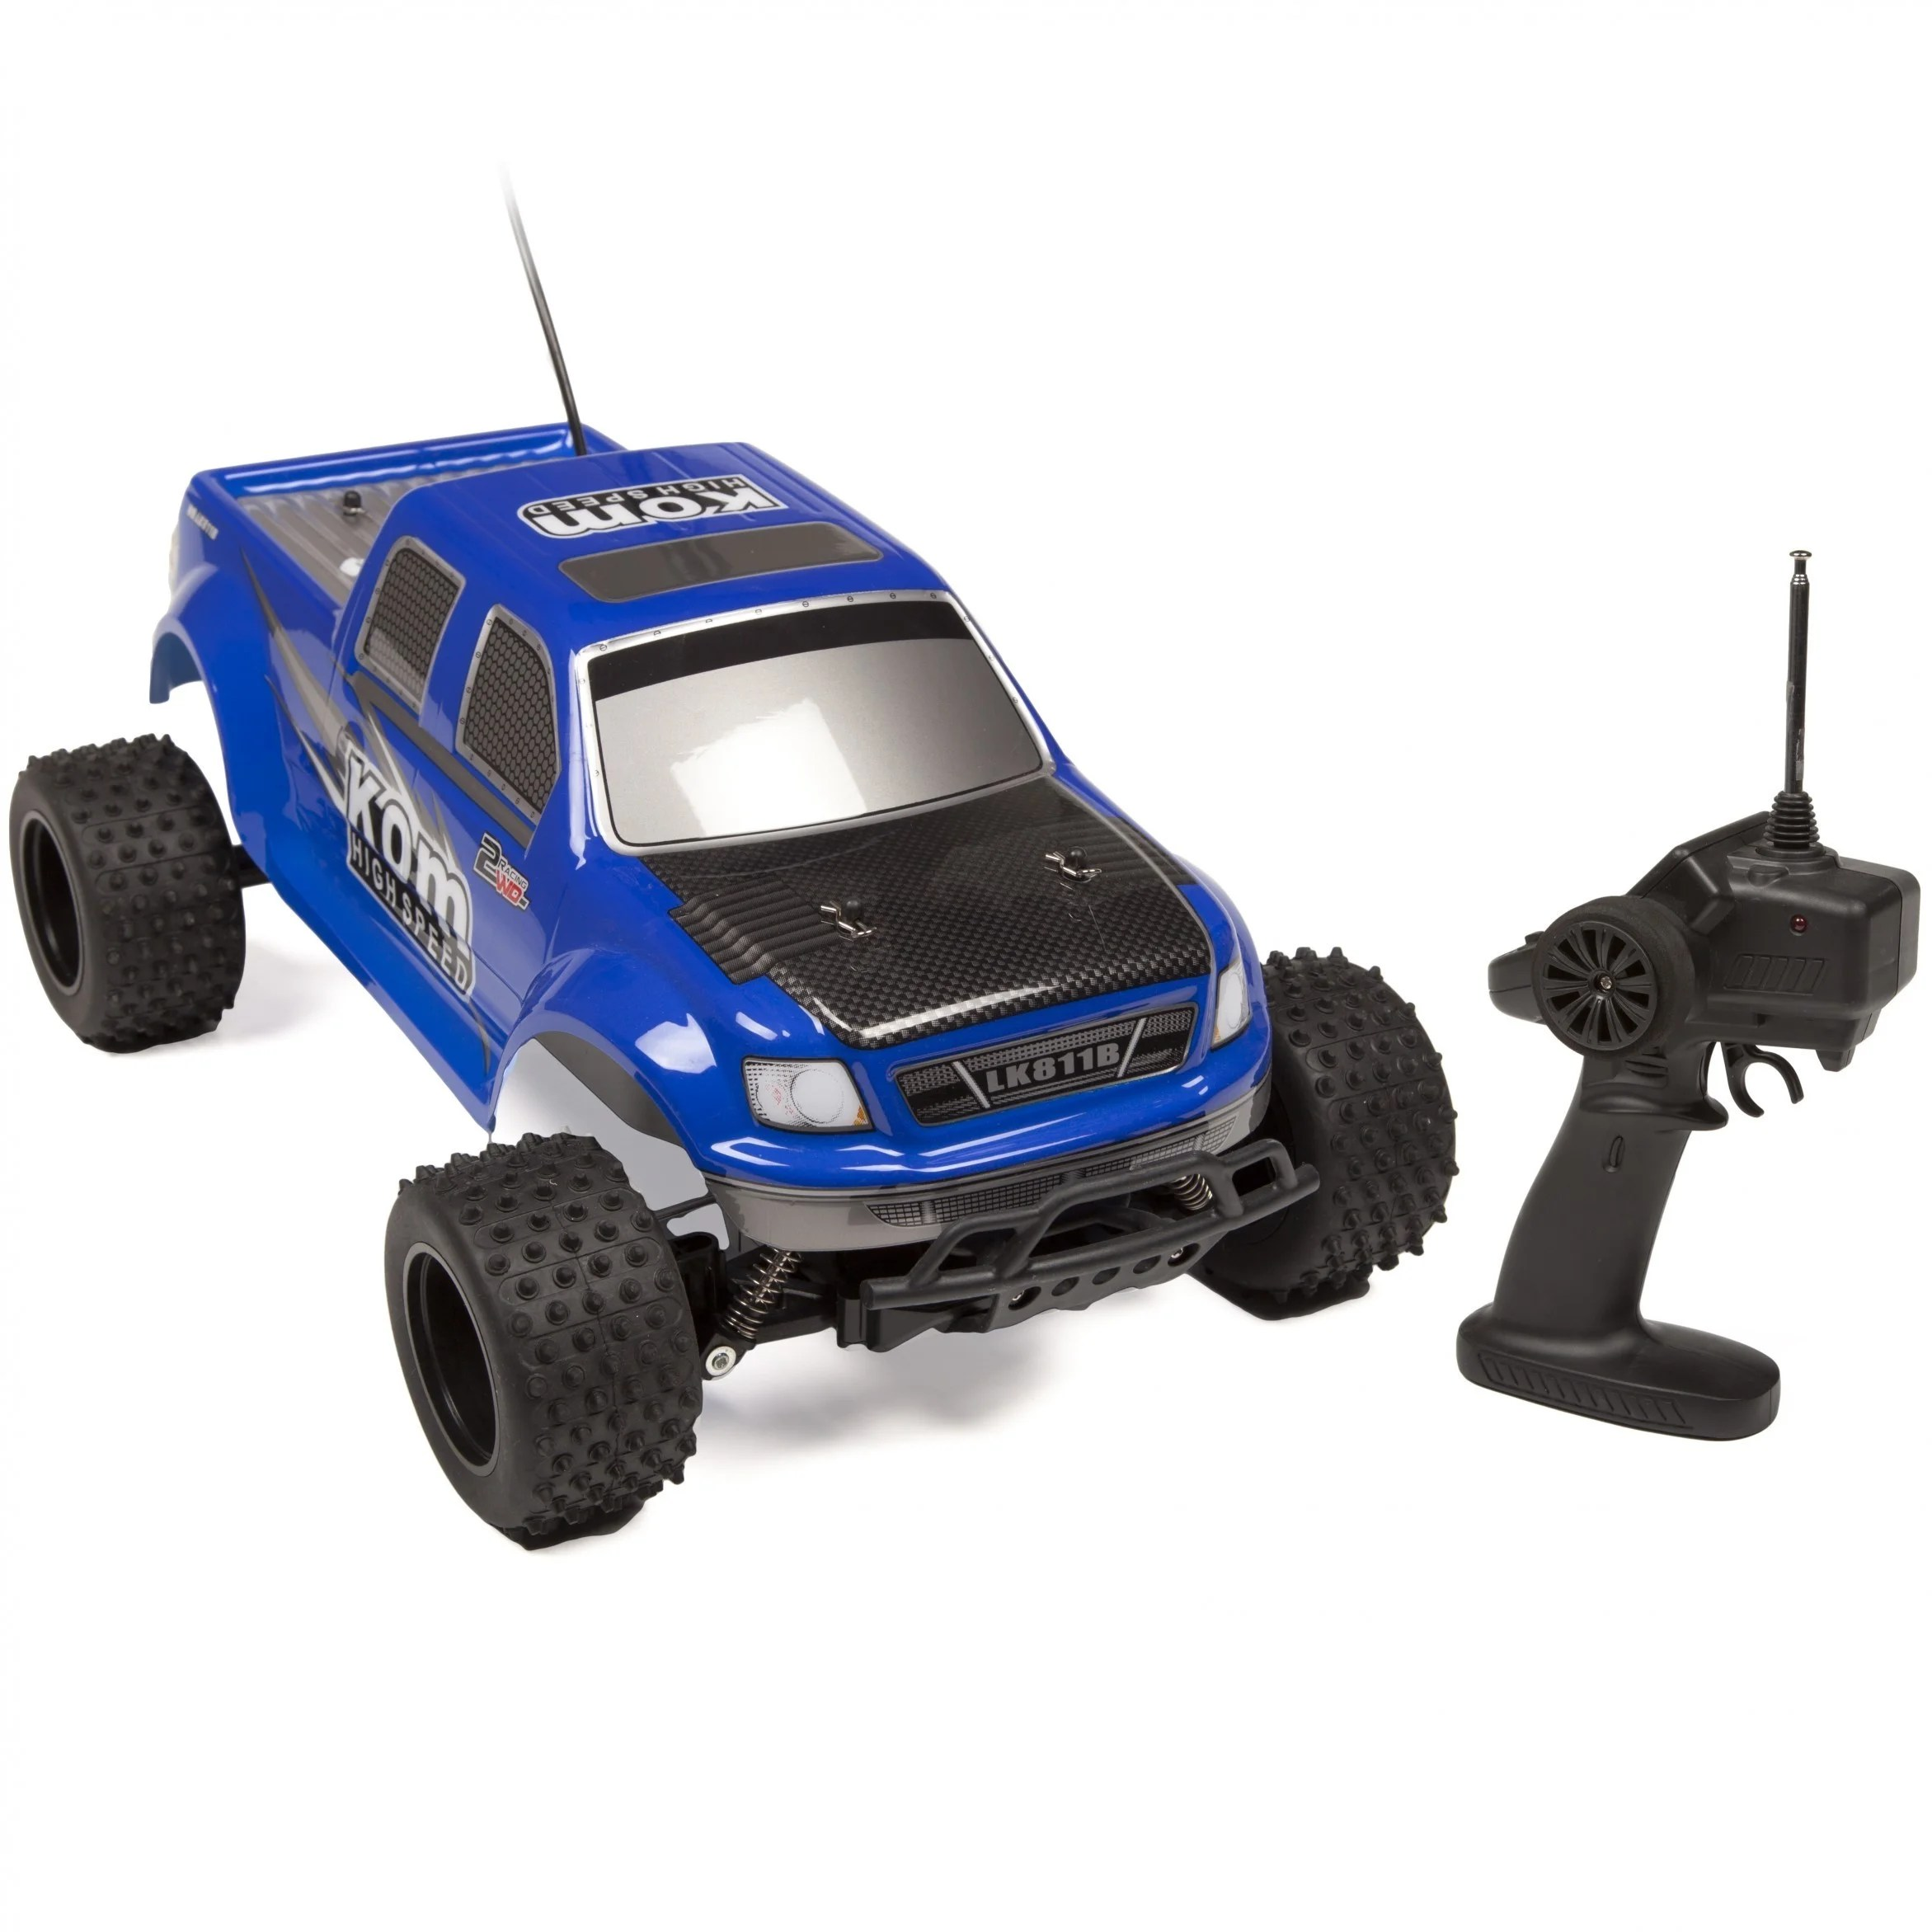 Rtr Rc Trucks Electric Reaper Blue Rtr Rc Truck